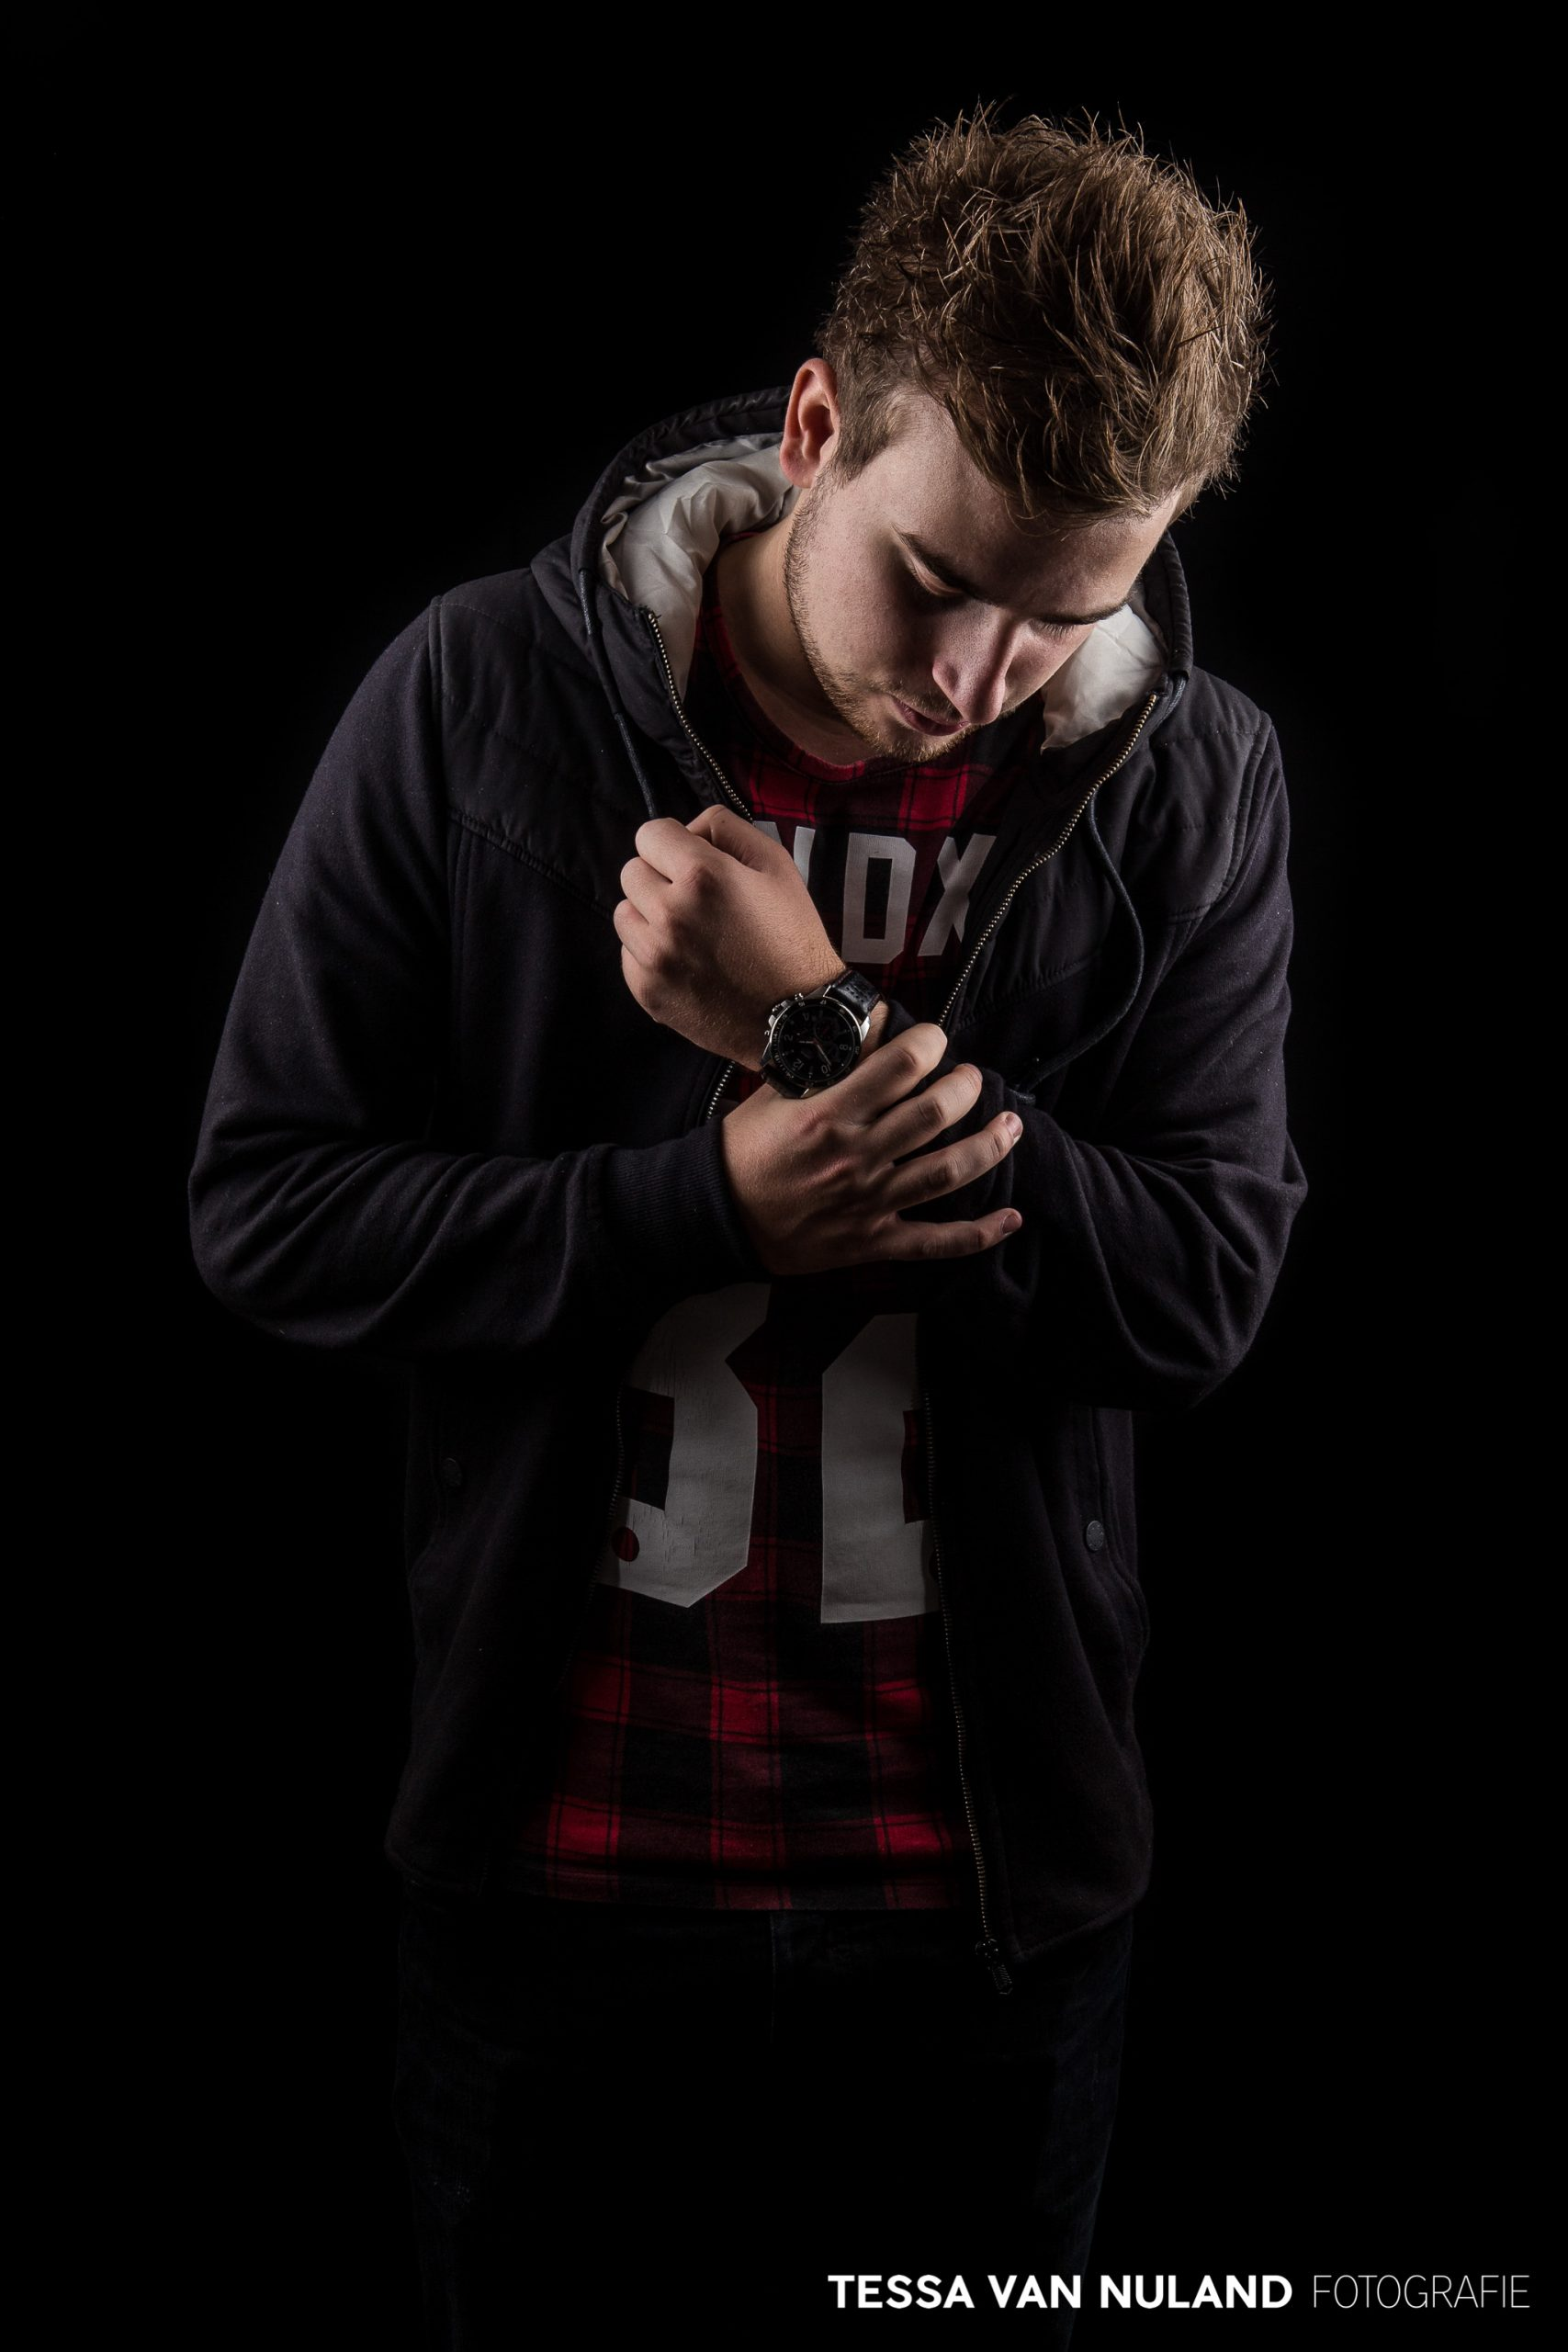 DJ, artiest, press shoot, hardstyle, presspic